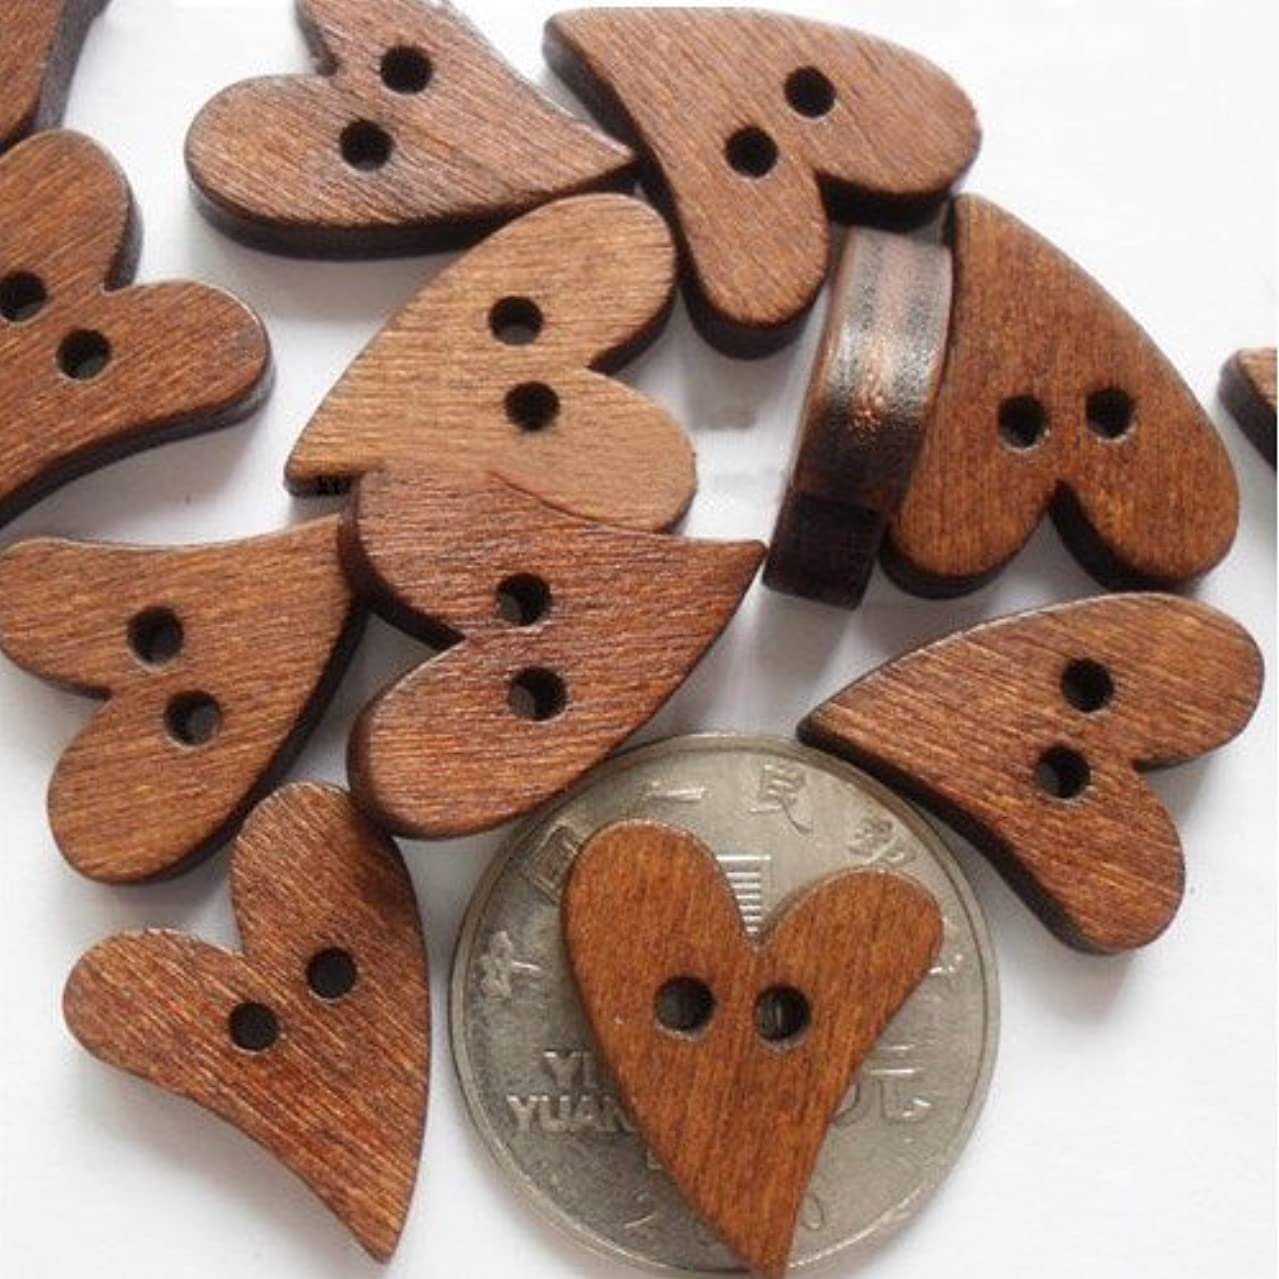 PEPPERLONELY Brand 100PC Brown Heart Shape Wood Buttons 2 Hole Scrapbooking Sewing Buttons 20x16mm